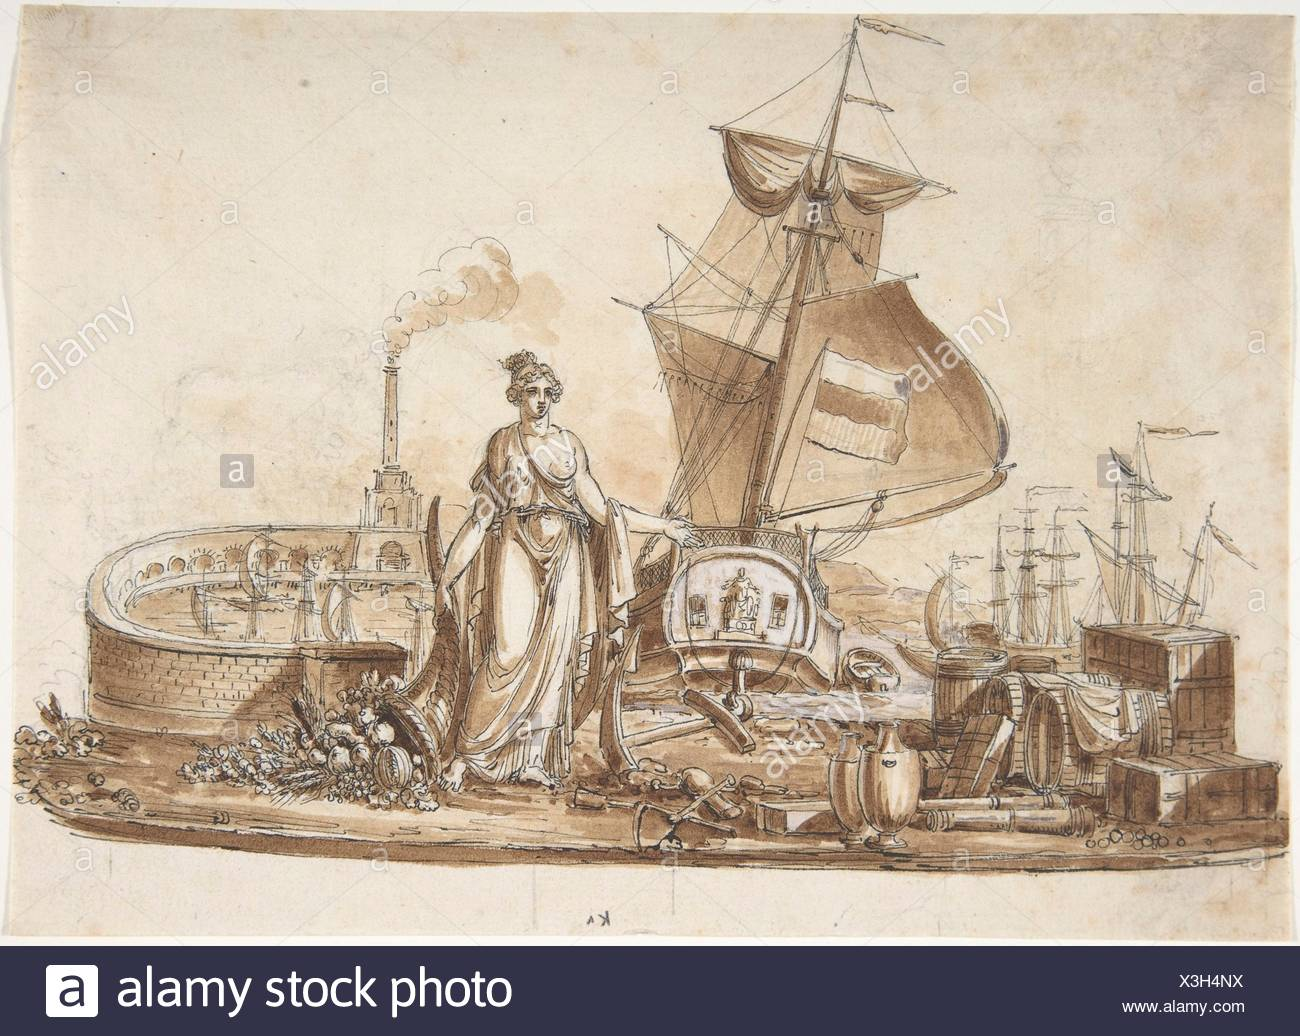 Allegory of Shipping. Artist: Charles Percier (French, Paris 1764-1838 Paris); Medium: Pen and black ink with brush and brown wash with white - Stock Image